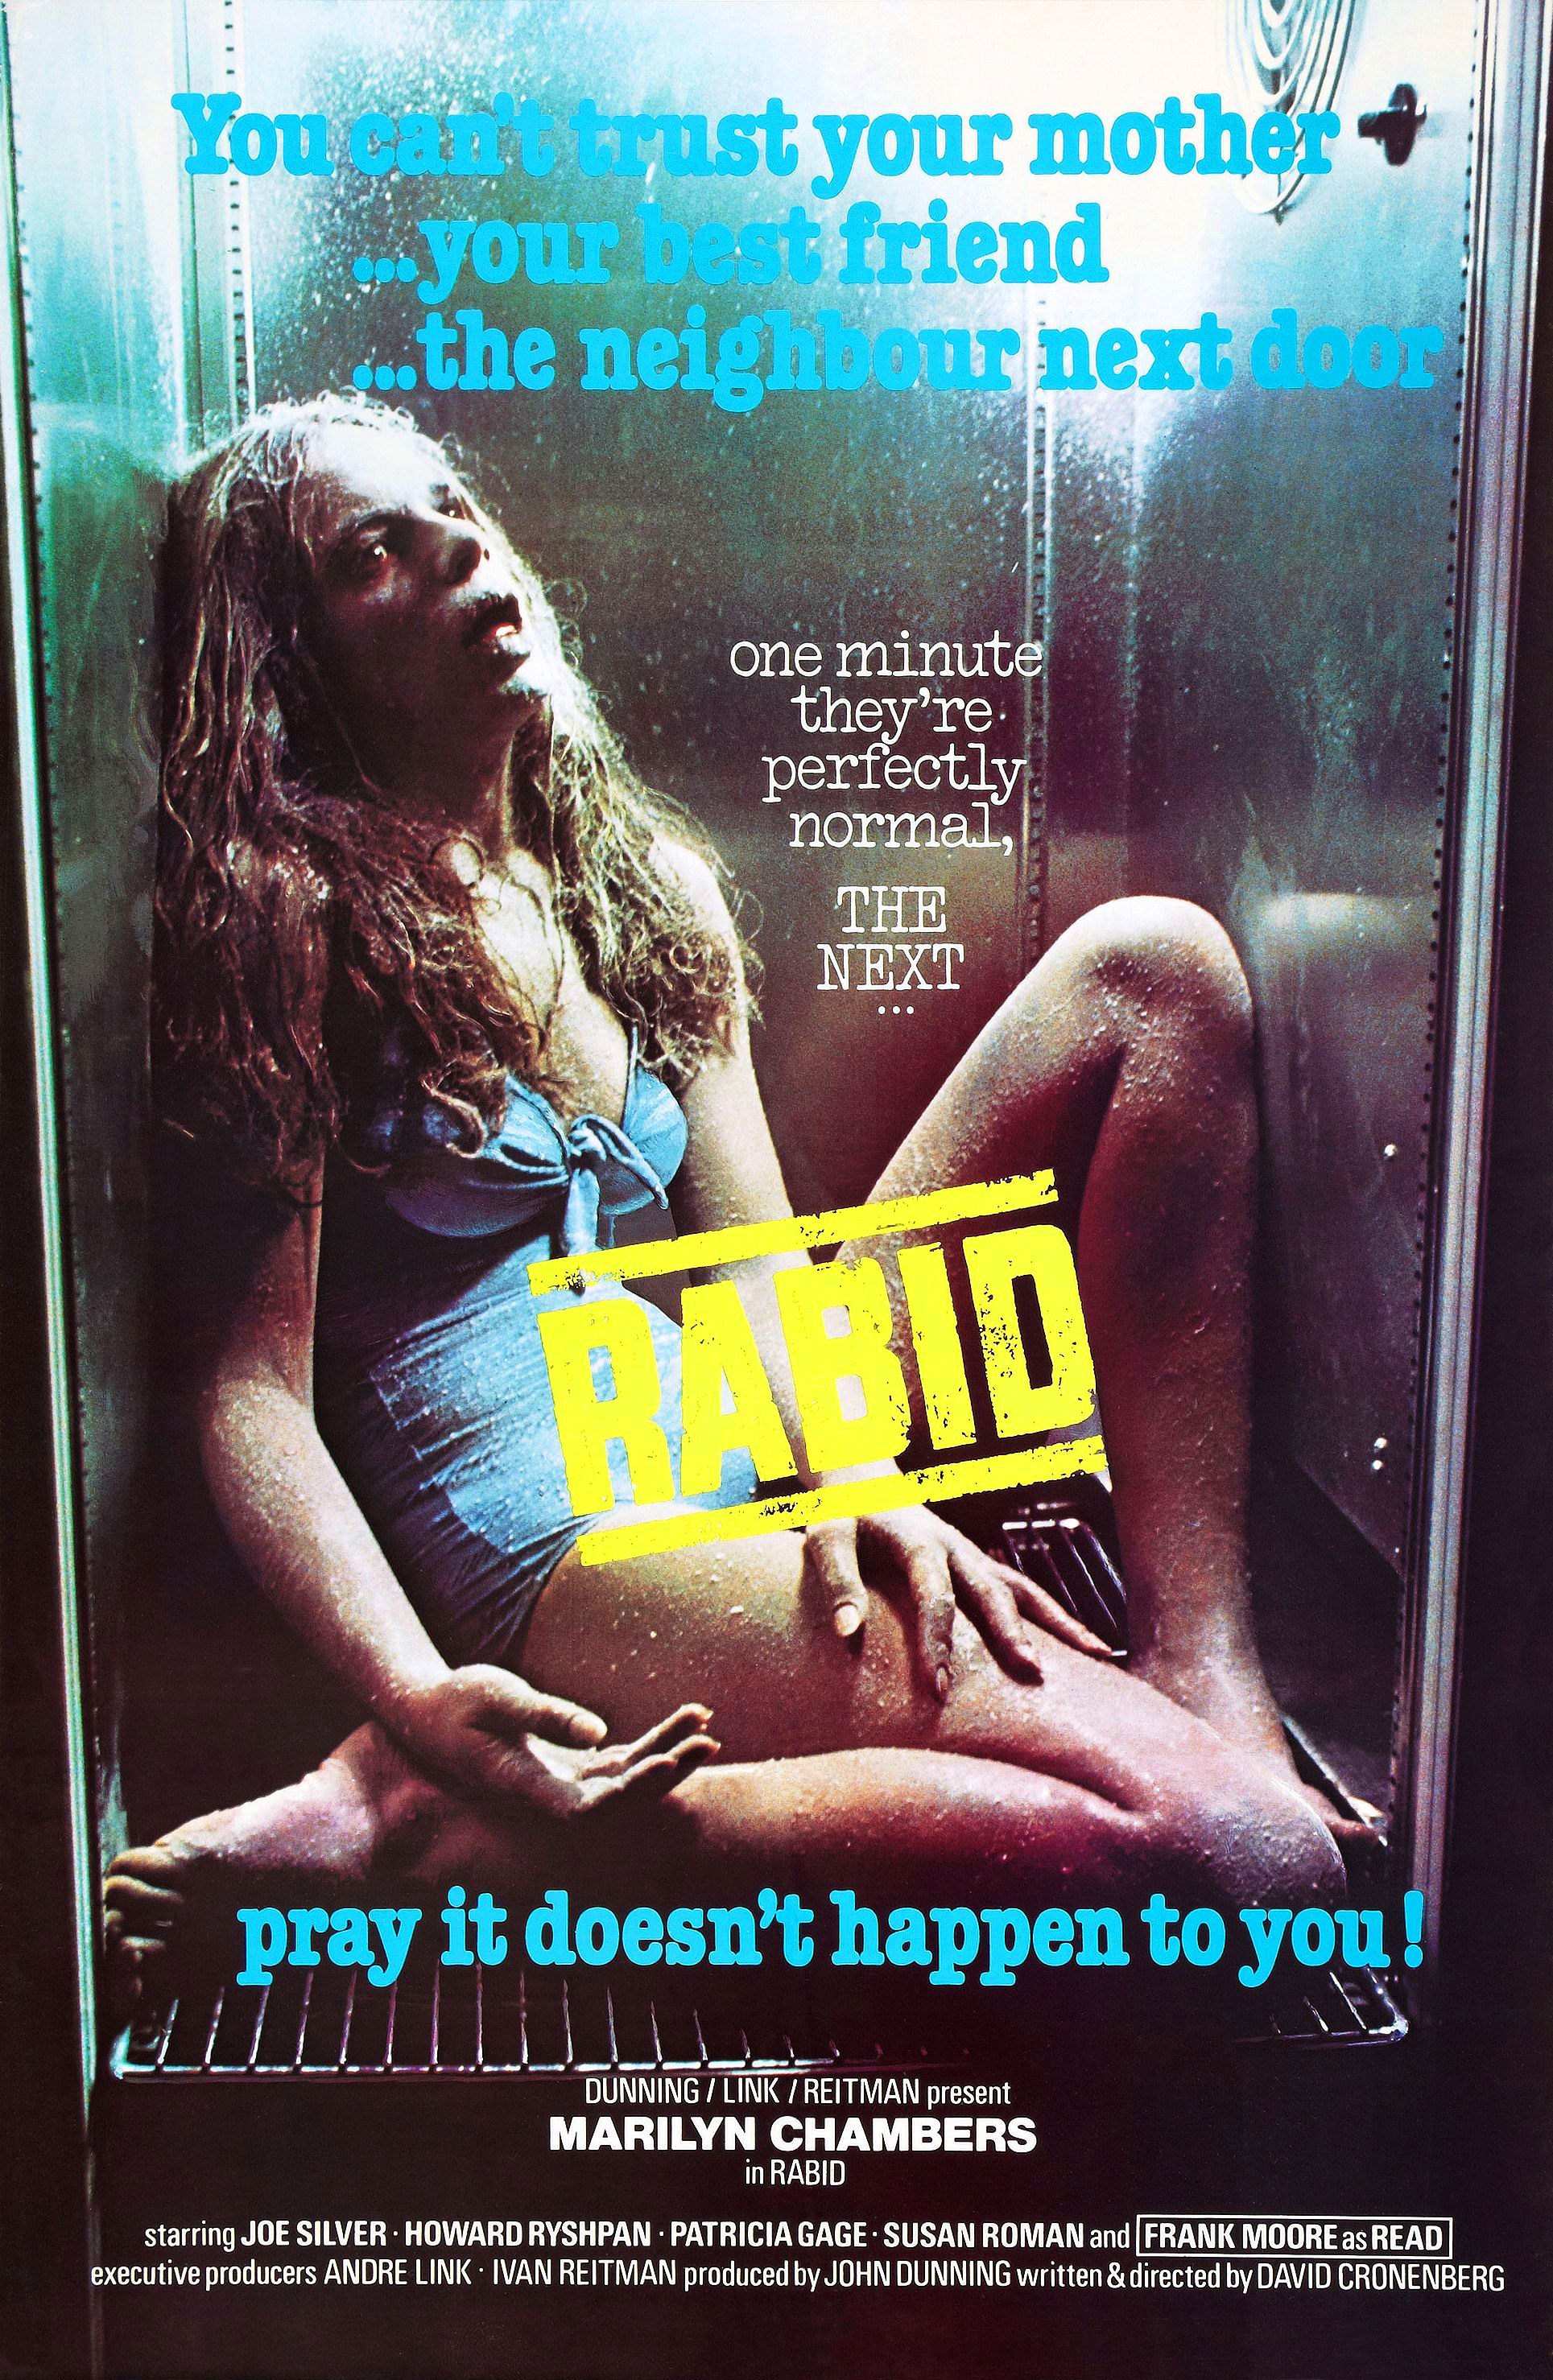 Rabid (1977) - Directed by: David CronenbergStarring: Marilyn Chambers, Frank Moore, Joe SilverRated: RRunning Time: 1 h 31 mTMM Score: 3 stars out of 5STRENGTHS: Practical Effects, Pacing, DirectingWEAKNESSES: Overreaches, Plot Holes